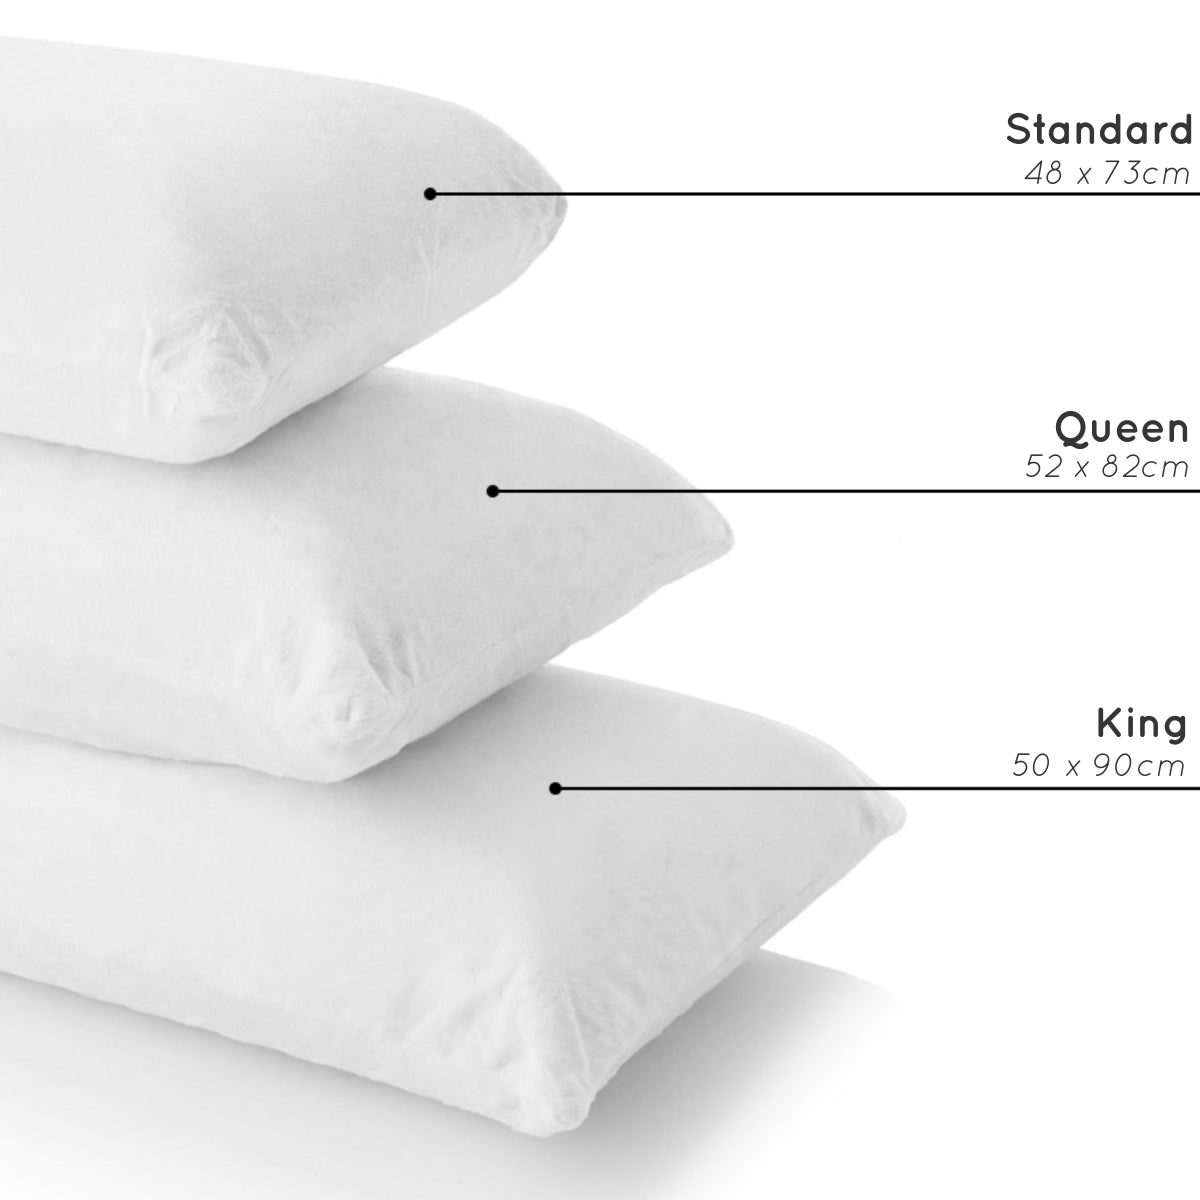 Queen Size Pillowcase | Baines Manchester on double size, king size, queen size, standard pattern, twin flat sheet size, euro sham size, standard color, crib sheet size, twin fitted sheet size, blanket size, pillow size,